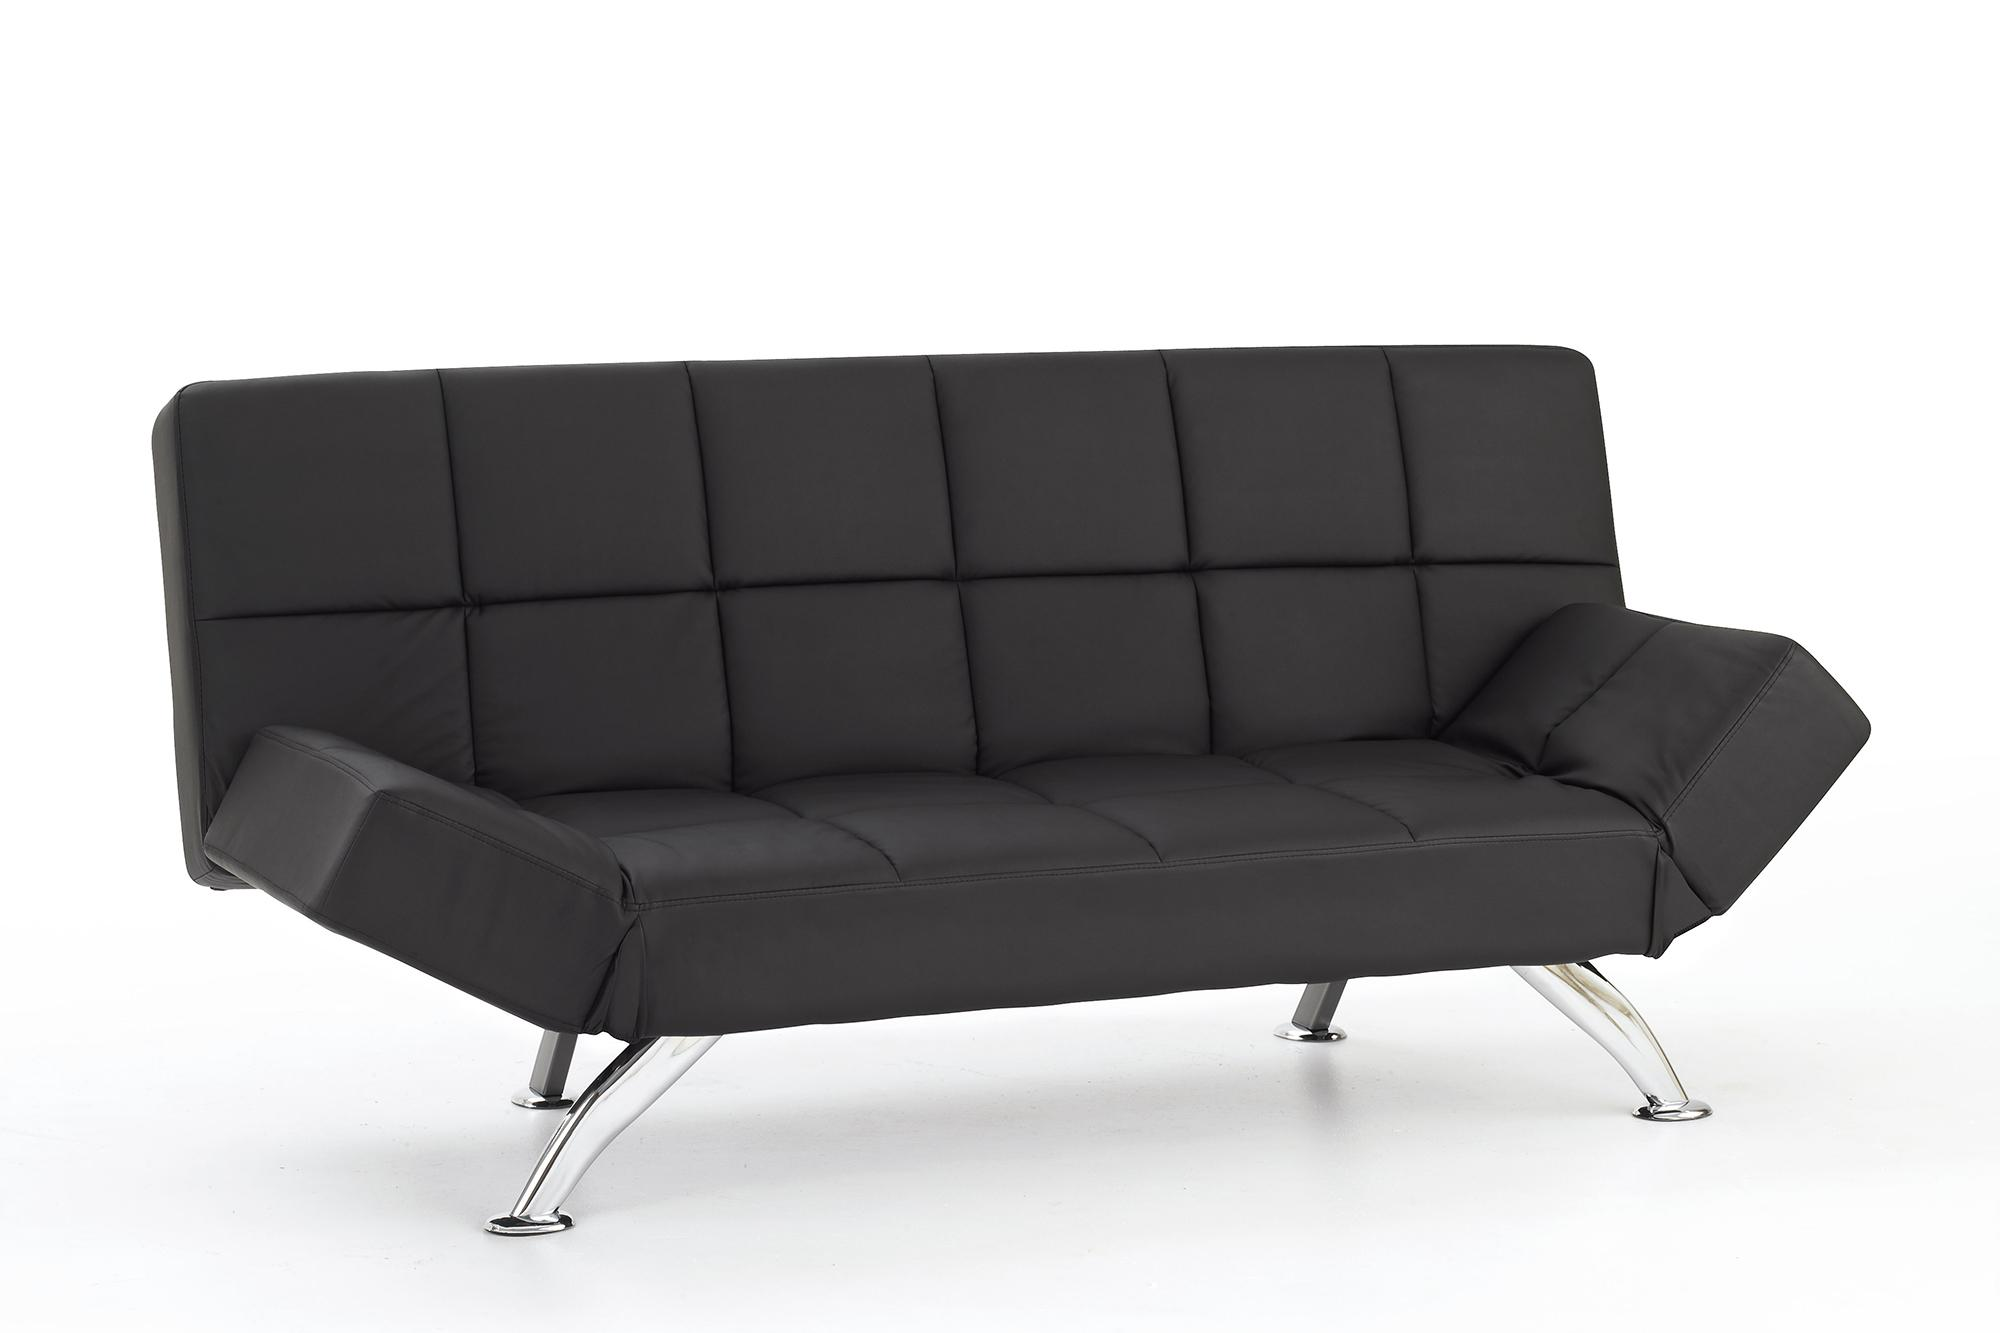 sofa deals uk prestwich for office top 30 cheapest click clack bed prices best